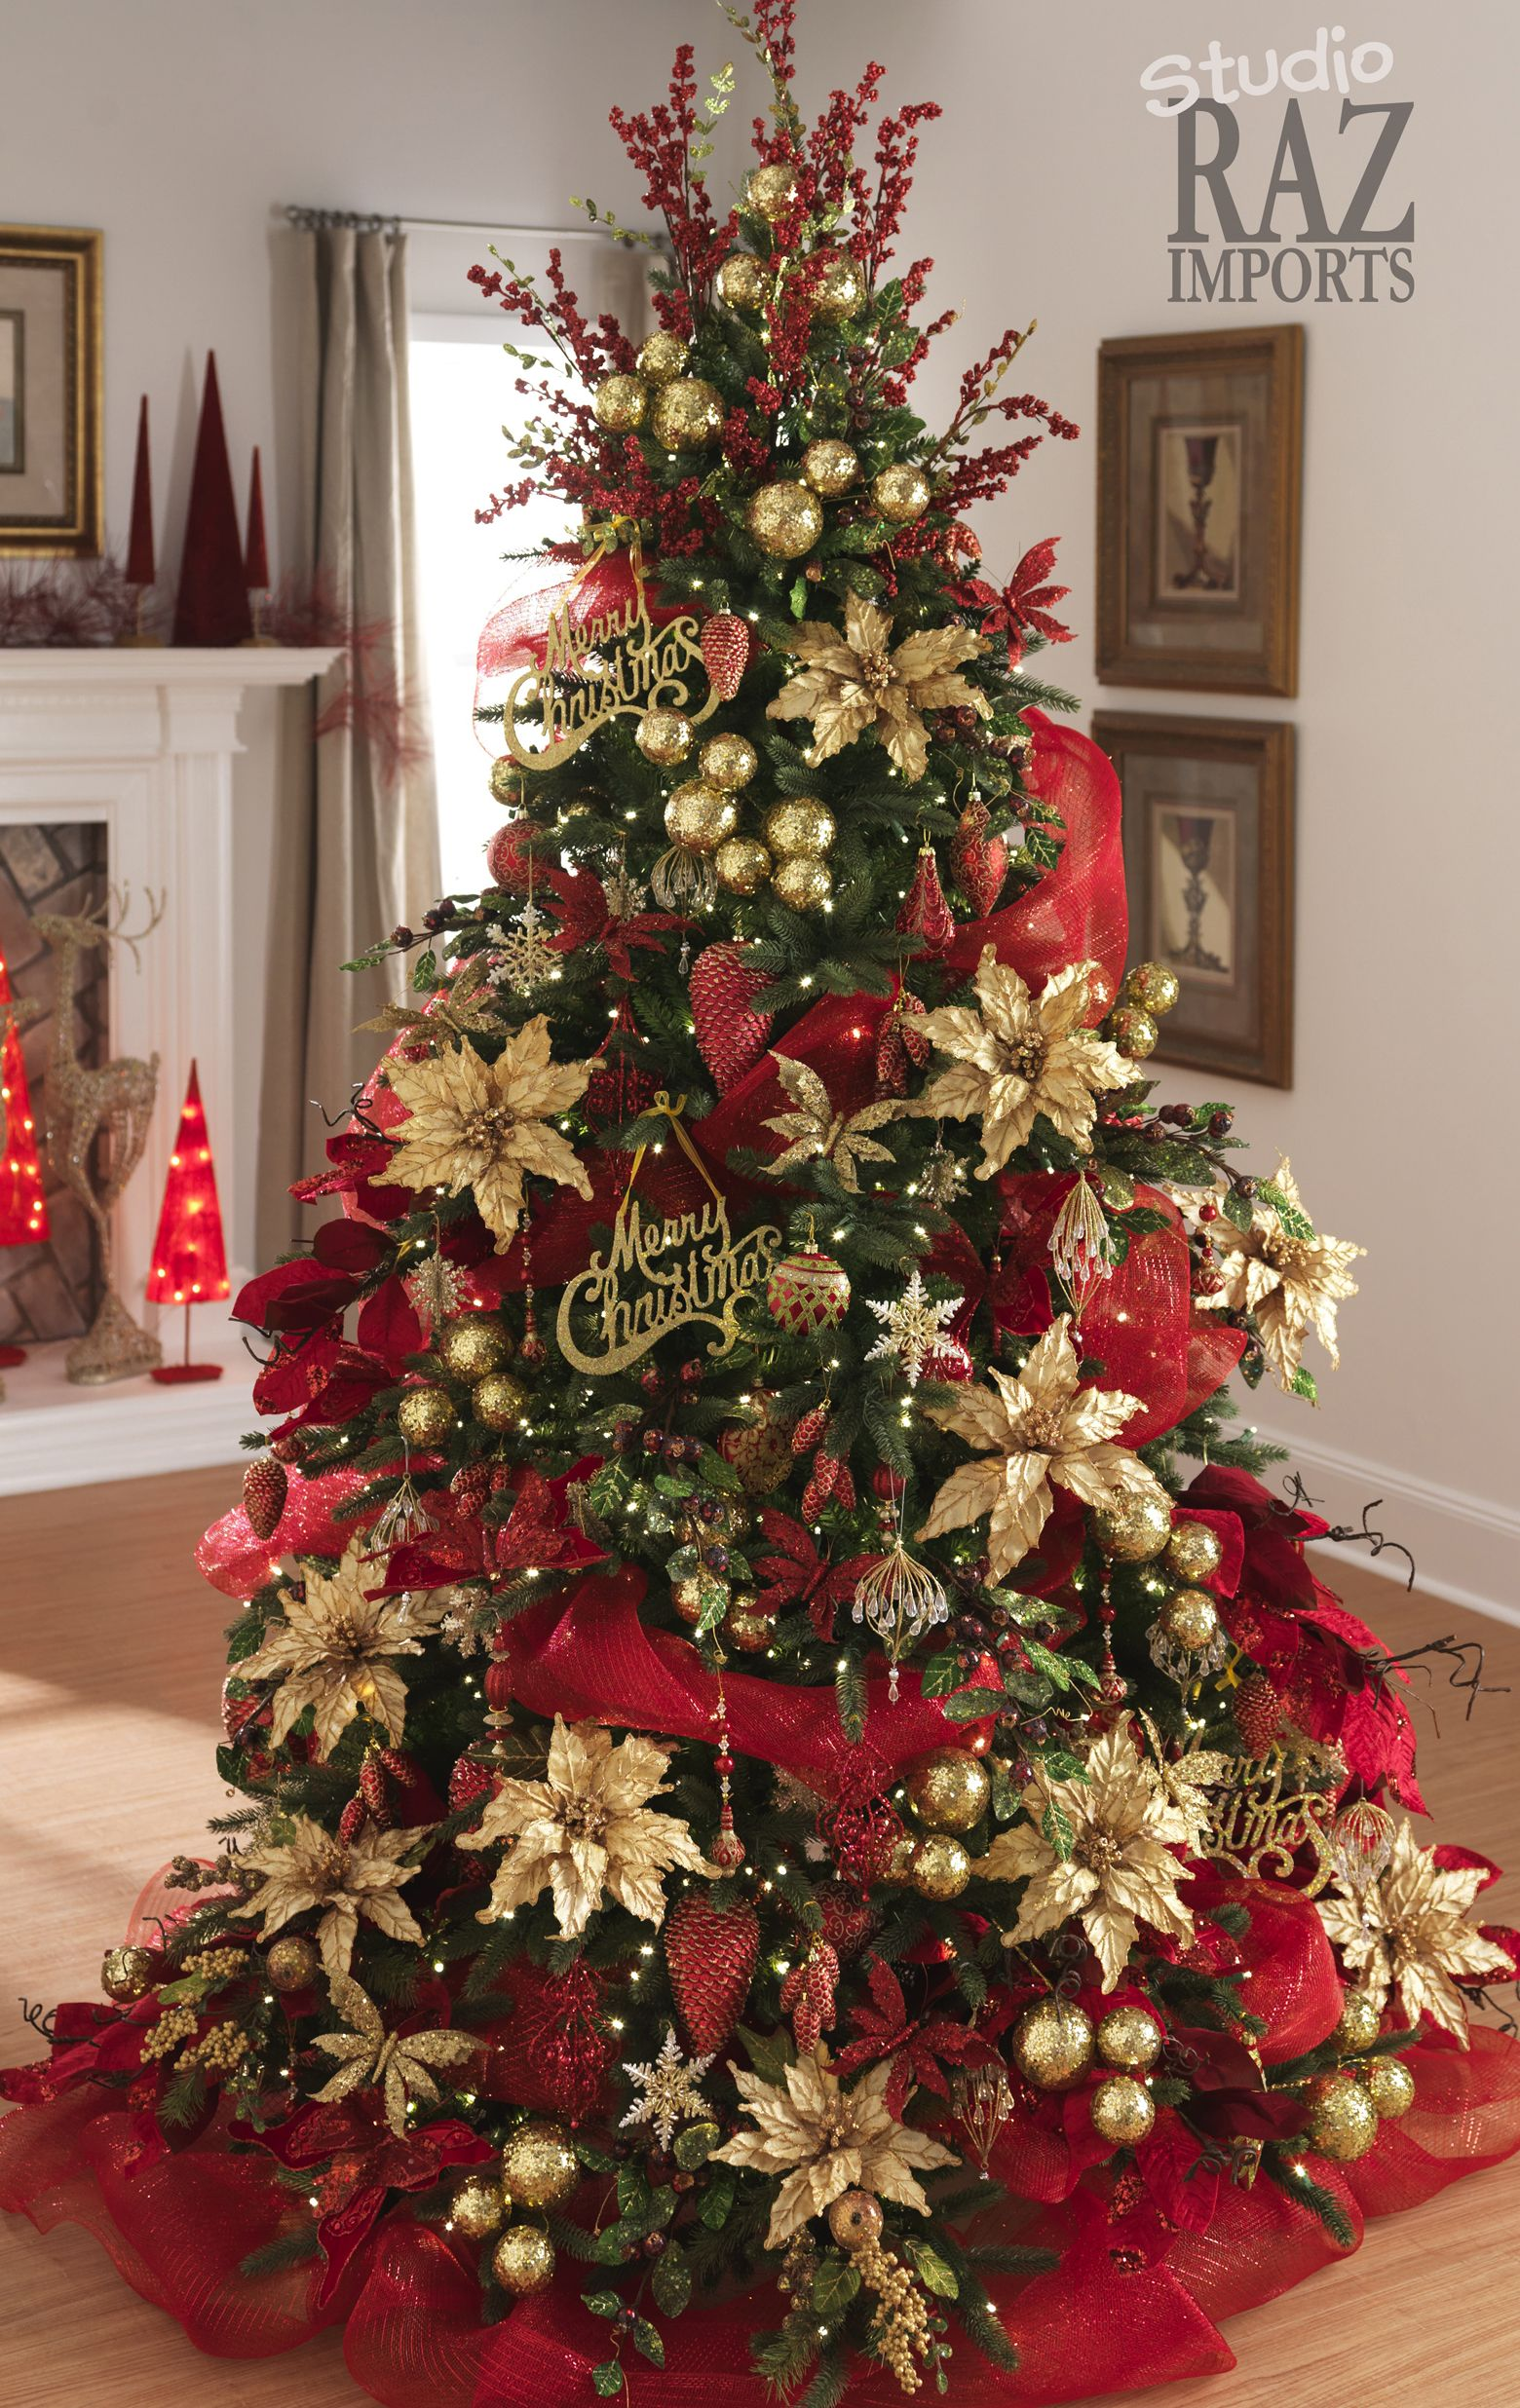 25 traditional red and green christmas decor ideas christmas trees pinterest christmas christmas decorations and christmas tree decorations - Poinsettia Christmas Tree Decorations